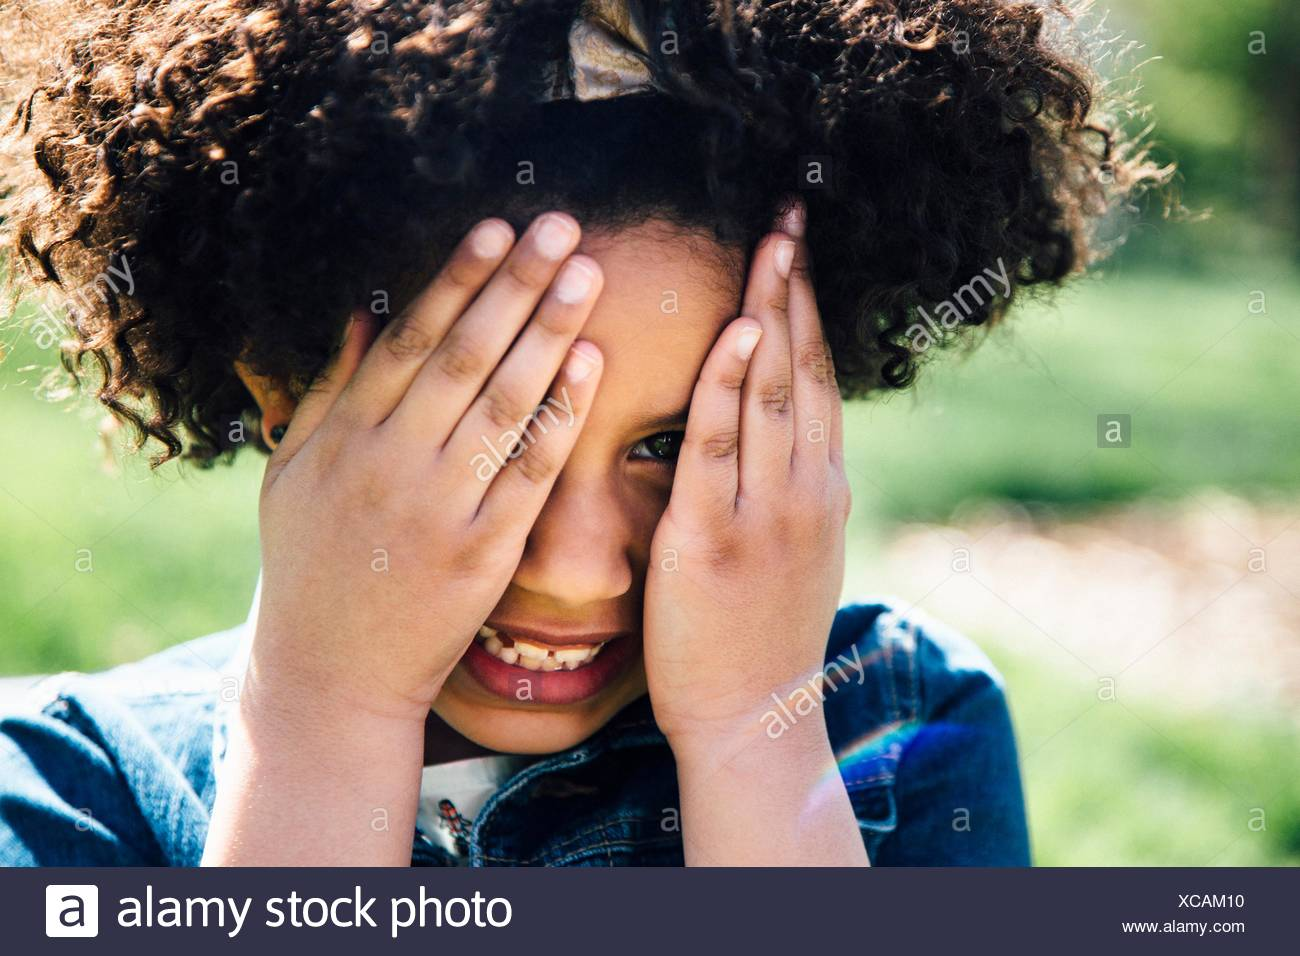 Close up portrait of girl covering face with hands - Stock Image